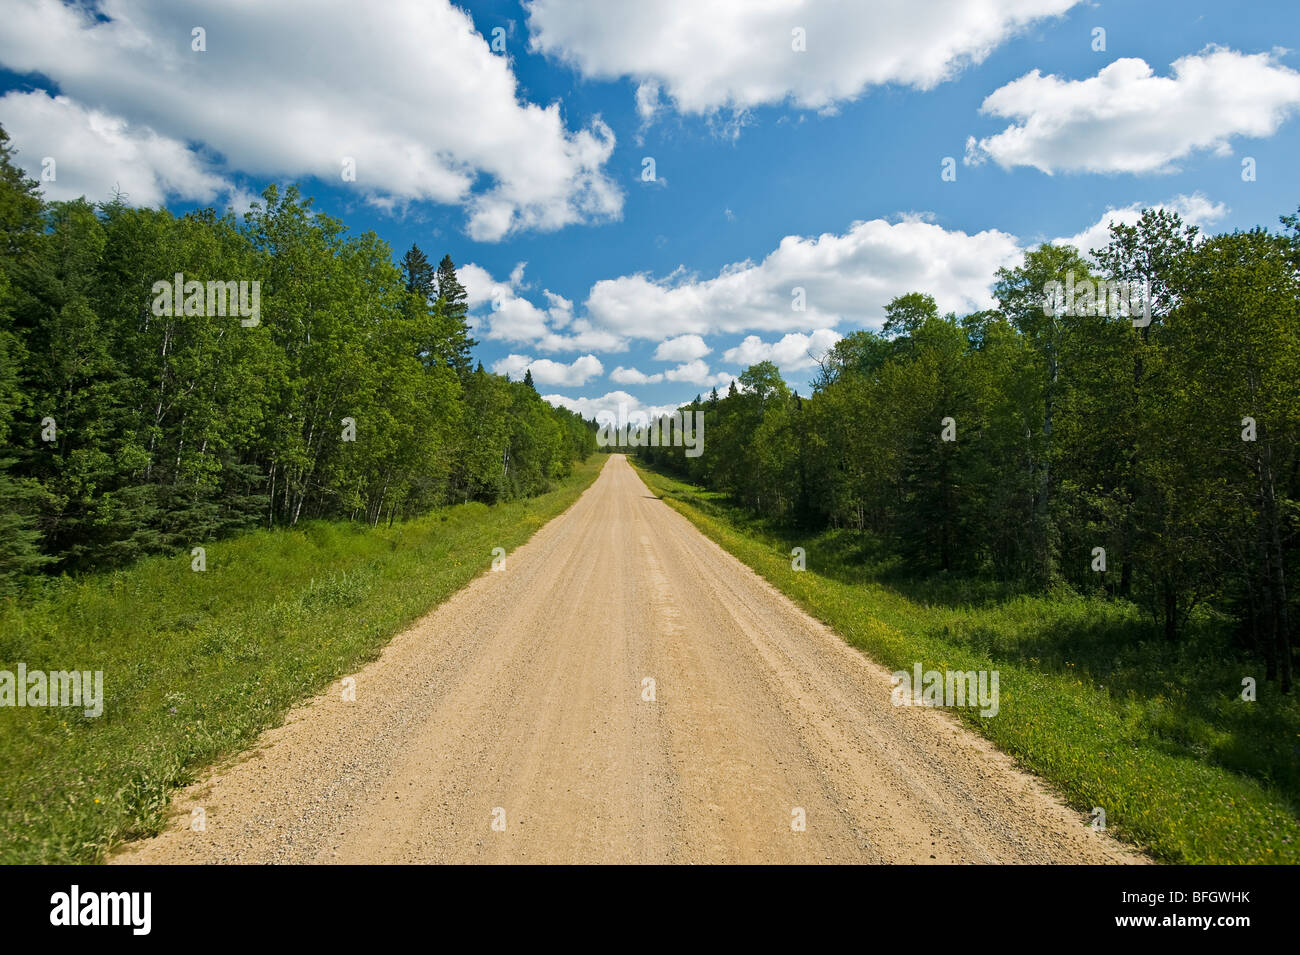 Country road through boreal forest. Duck Mountain Provincial Park, Manitoba, Canada - Stock Image